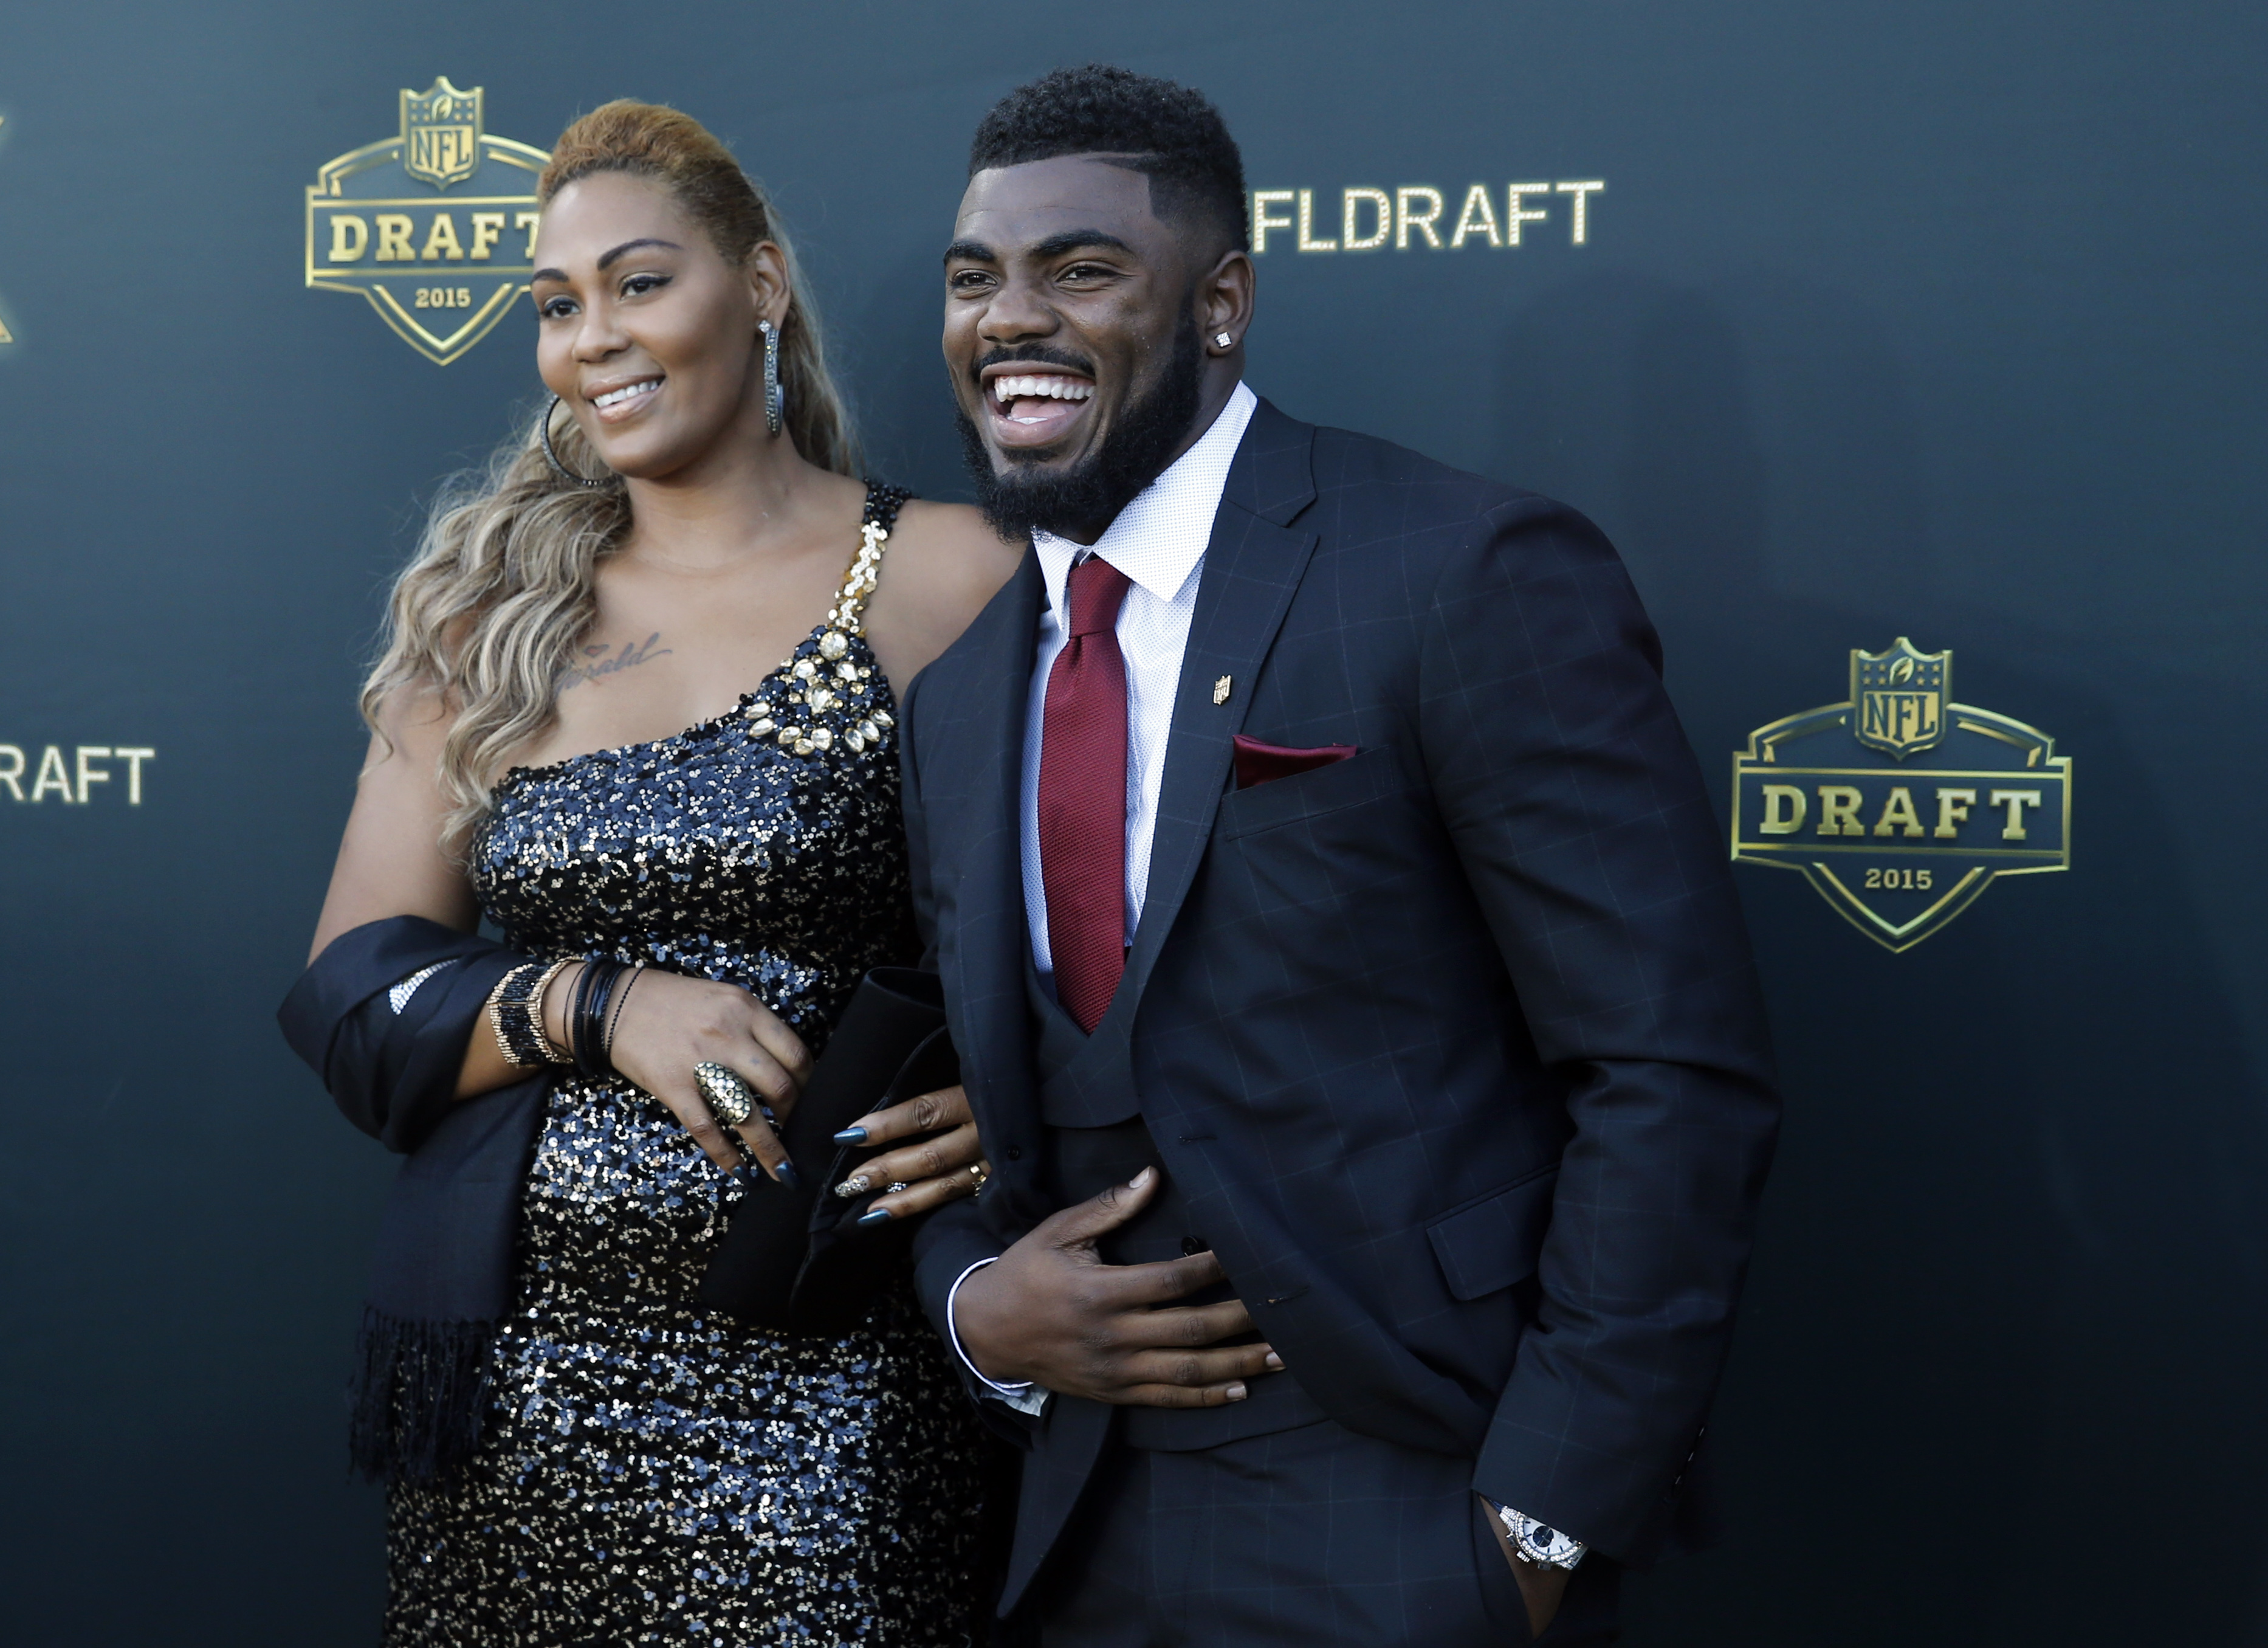 Alabama defensive back Landon Collins poses for photos his mother April Justin, upon arriving for the first round of the 2015 NFL Football Draft at the Auditorium Theater of Roosevelt University, Thursday, April 30, 2015, in Chicago. (AP Photo/Charles Rex